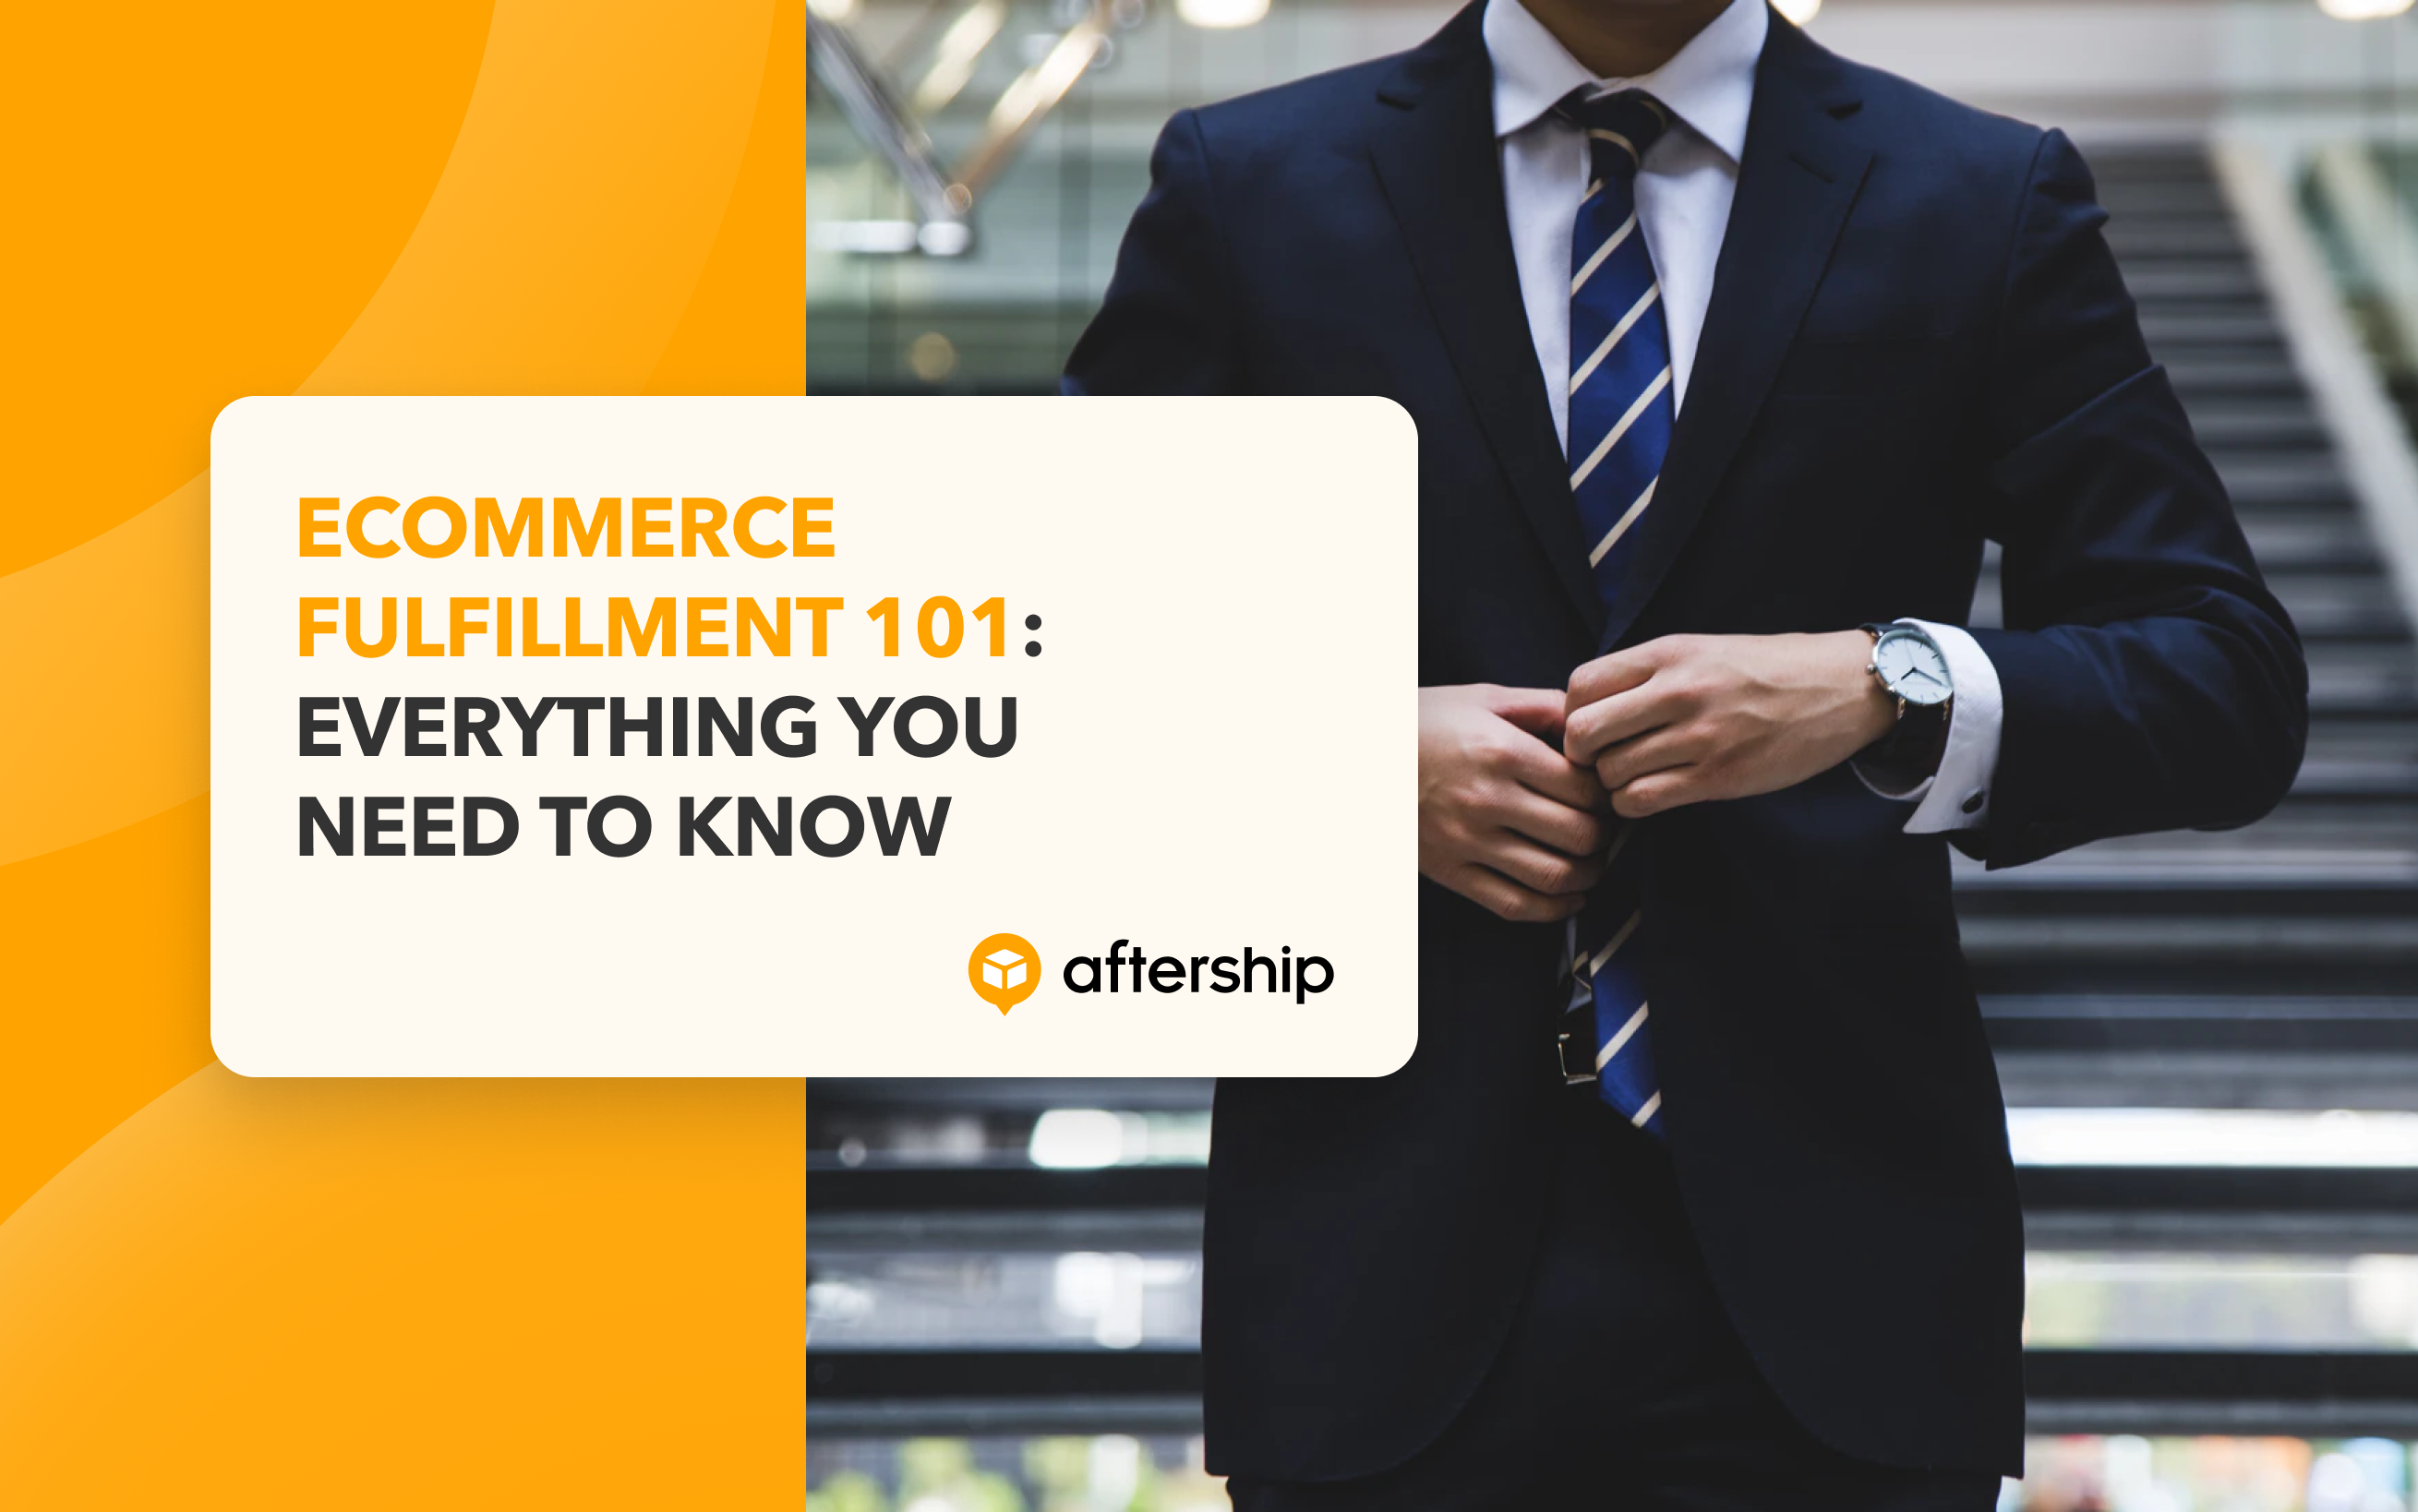 Ecommerce Fulfillment 101: Everything You Need to Know